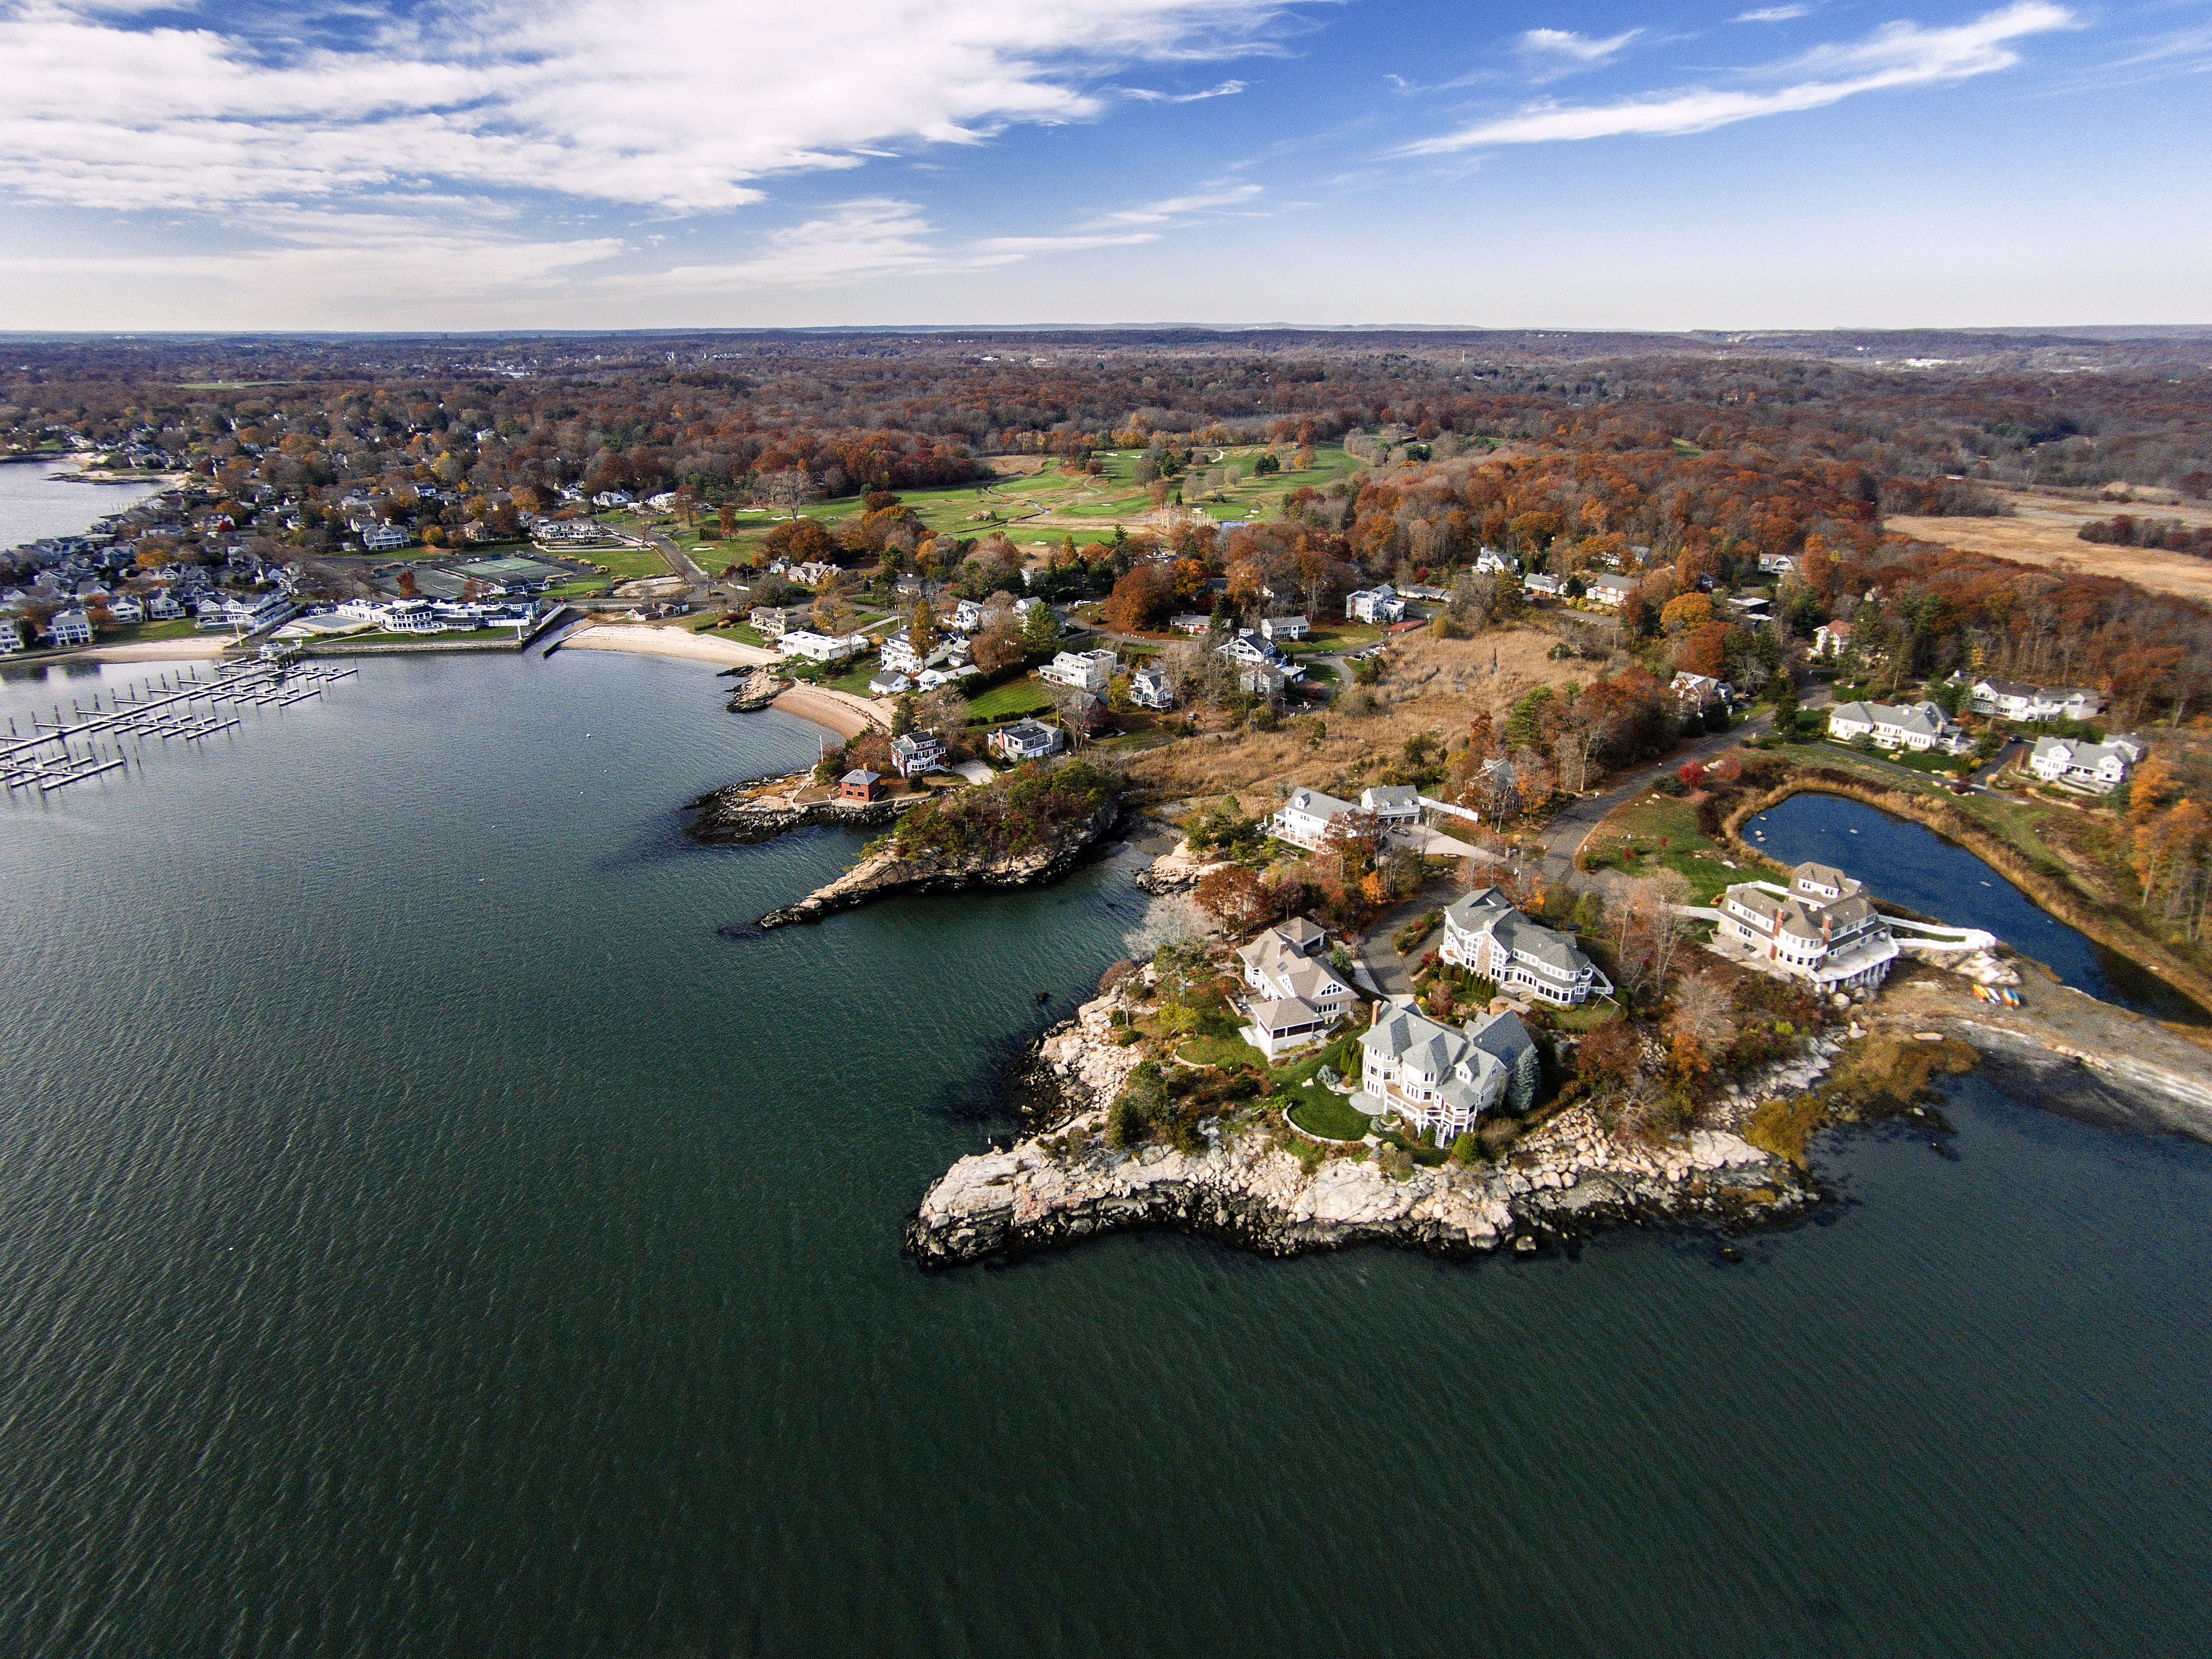 Single Family Home for Sale at Juniper Point Association 24 Juniper Point Rd Branford, Connecticut 06405 United States